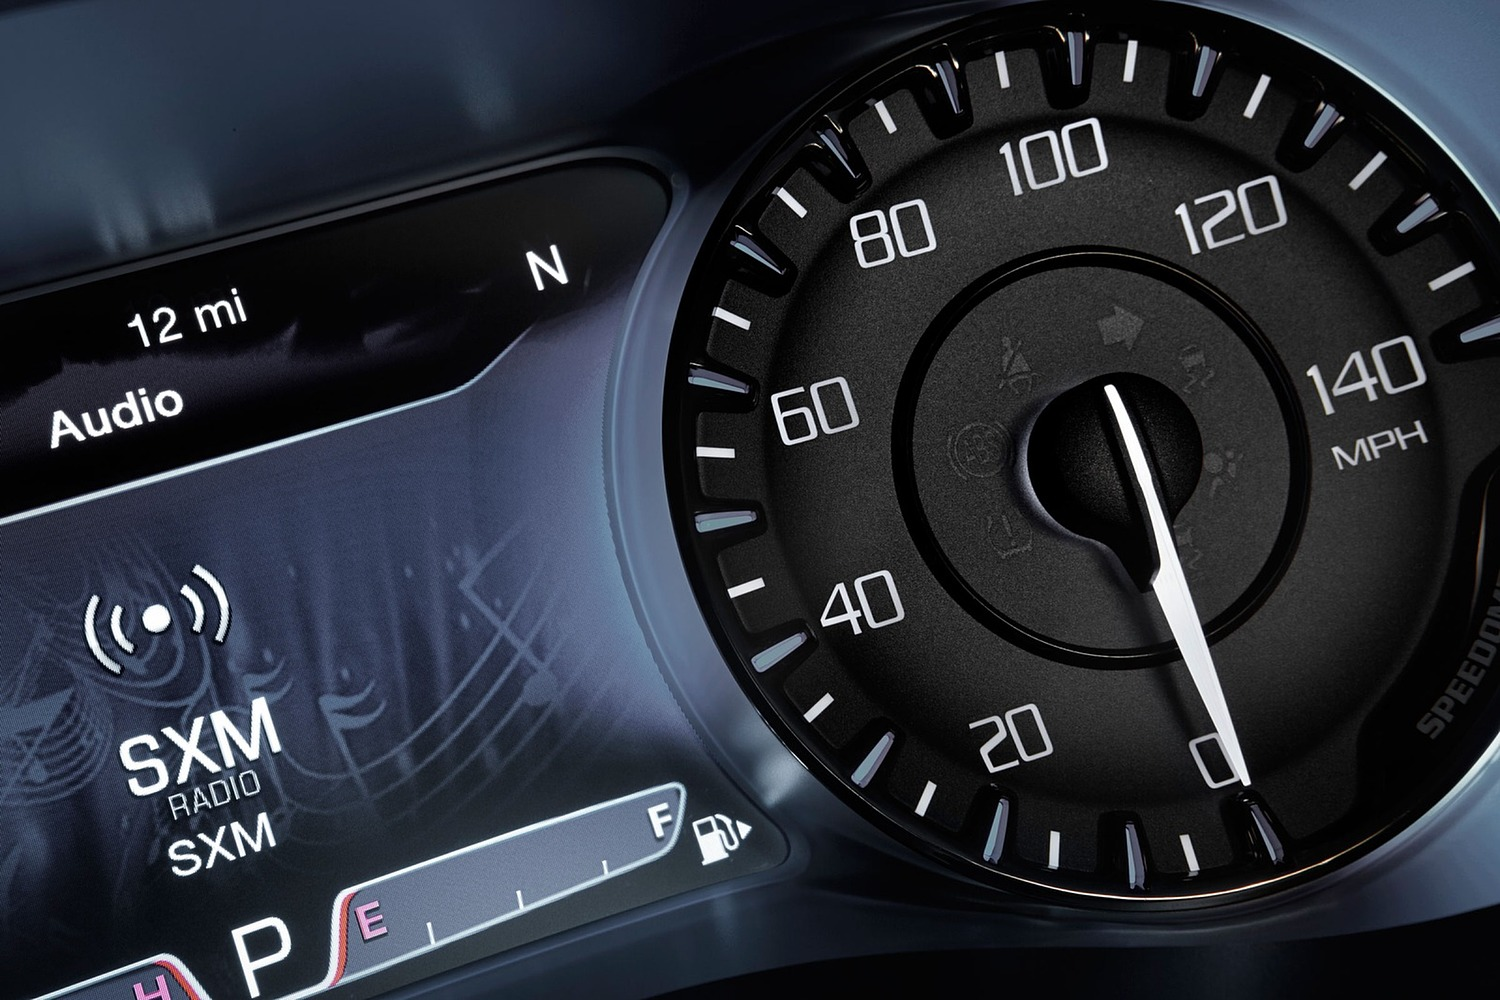 2016 Chrysler 200 S Sedan Gauge Cluster